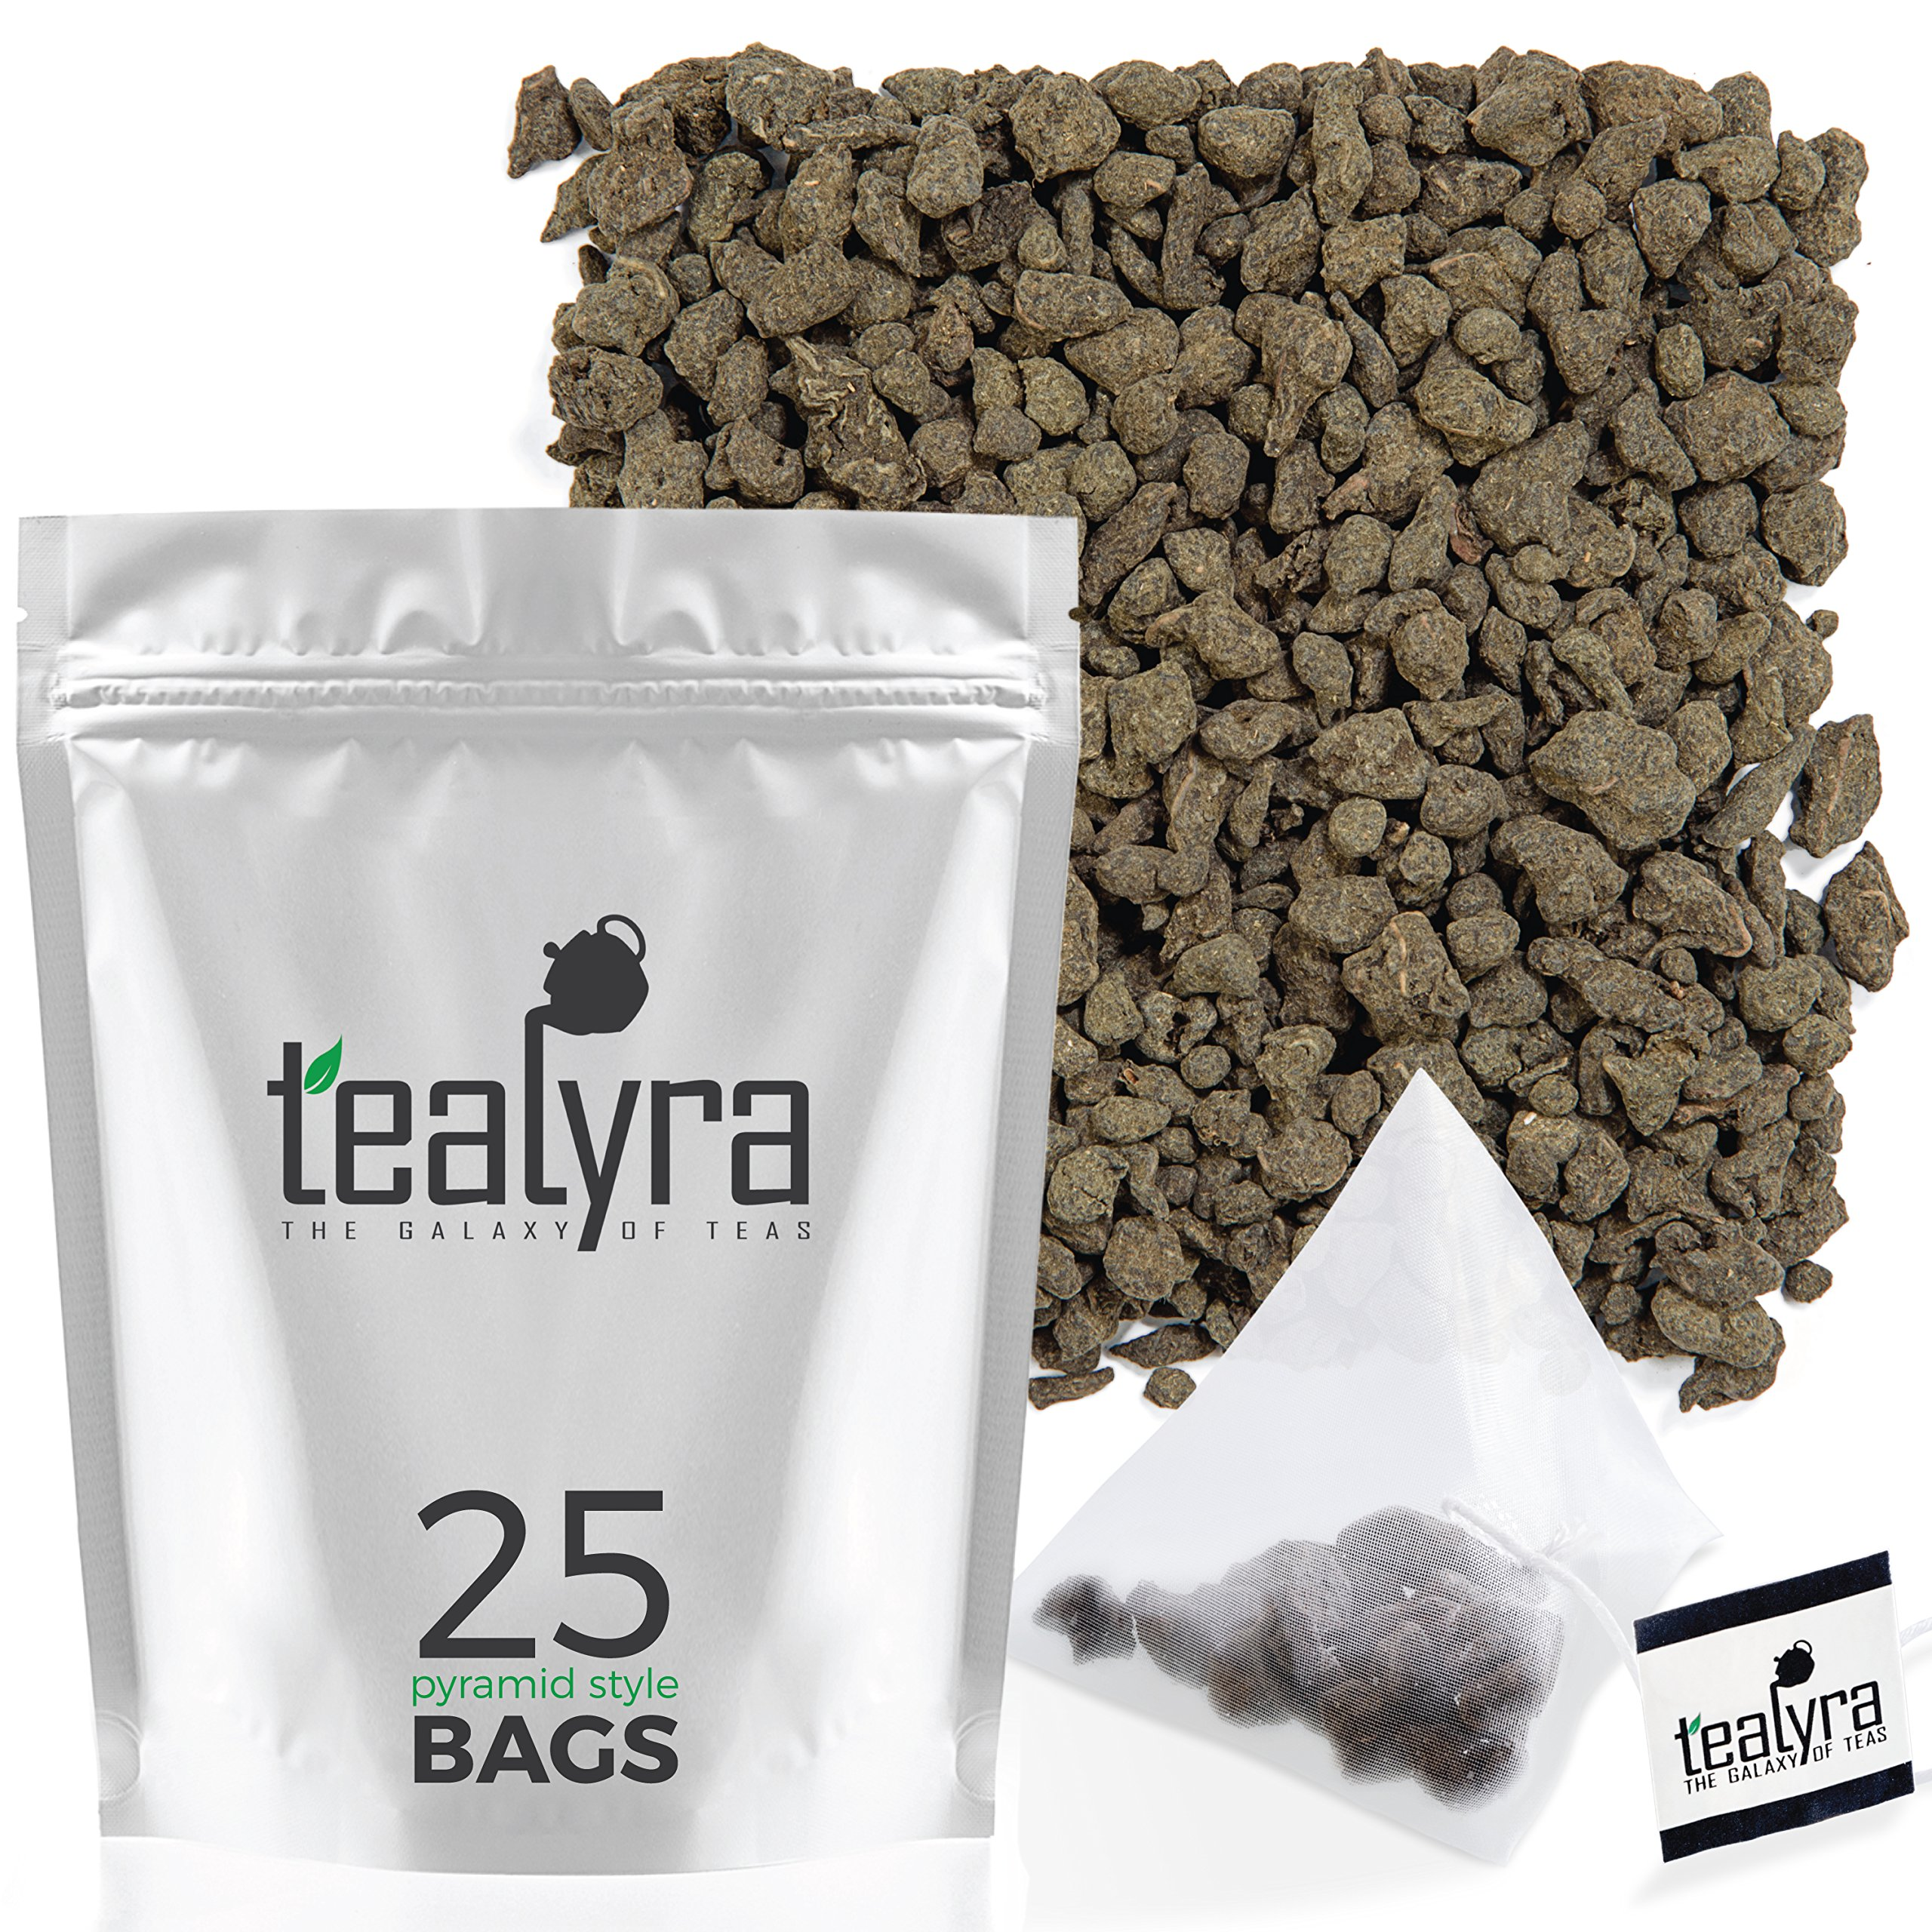 Tealyra - Imperial Ginseng Ren Shen - 25 Bags - Oolong Loose Leaf Tea - Best Ginseng Tea - Energy Boost - Healthy Drink - Pyramids Style Sachets